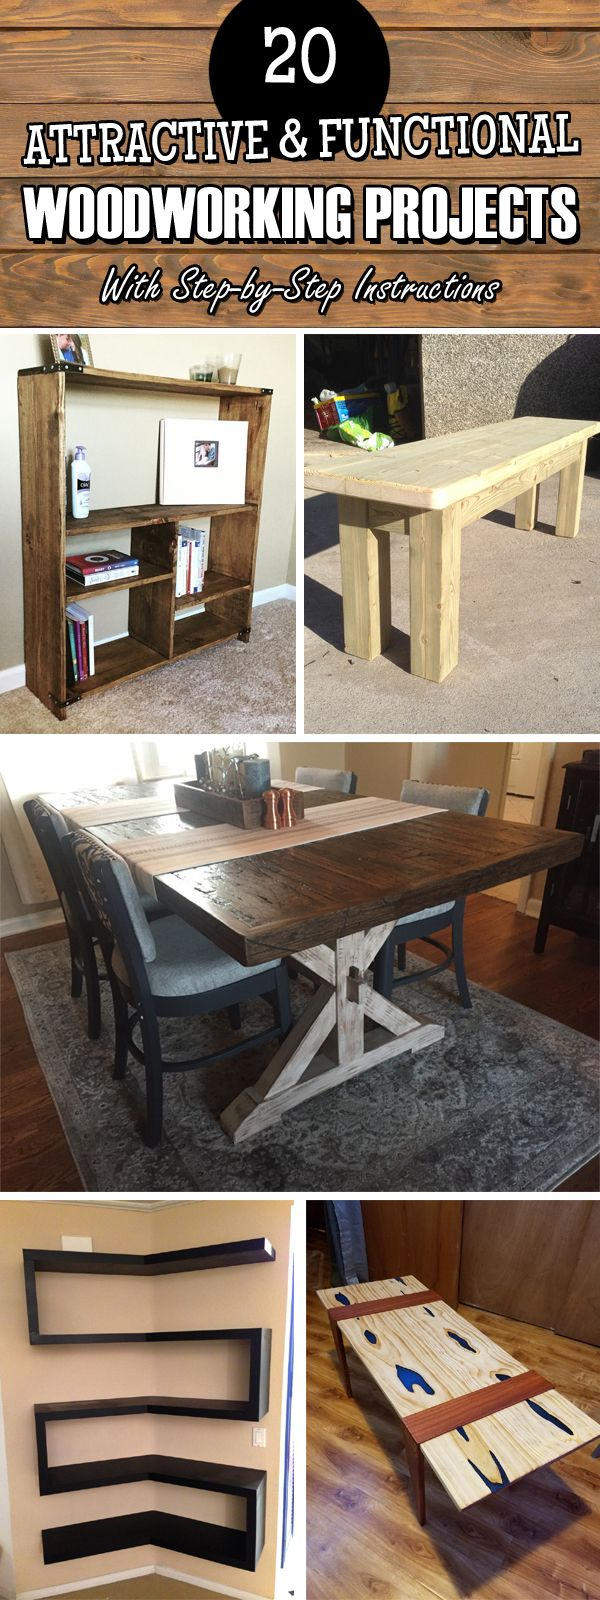 Woodworking bench diy superb japanese modern shop interior design - 1063 Best Woodworking Projects Images On Pinterest Teds Woodworking Woodworking Projects And Diy